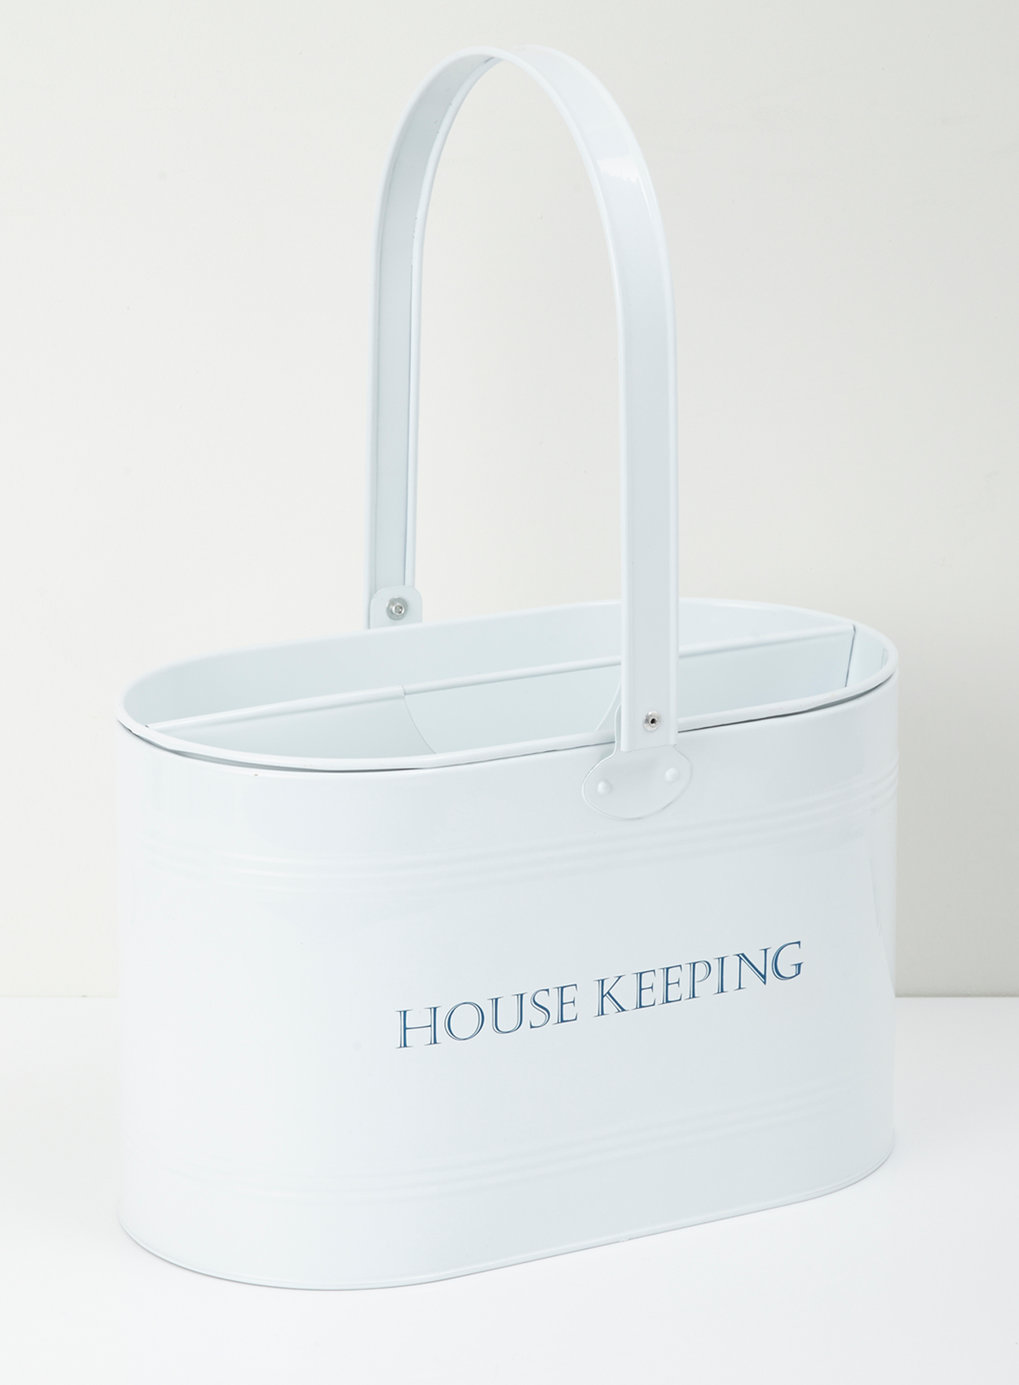 Housekeeping Box - BHS